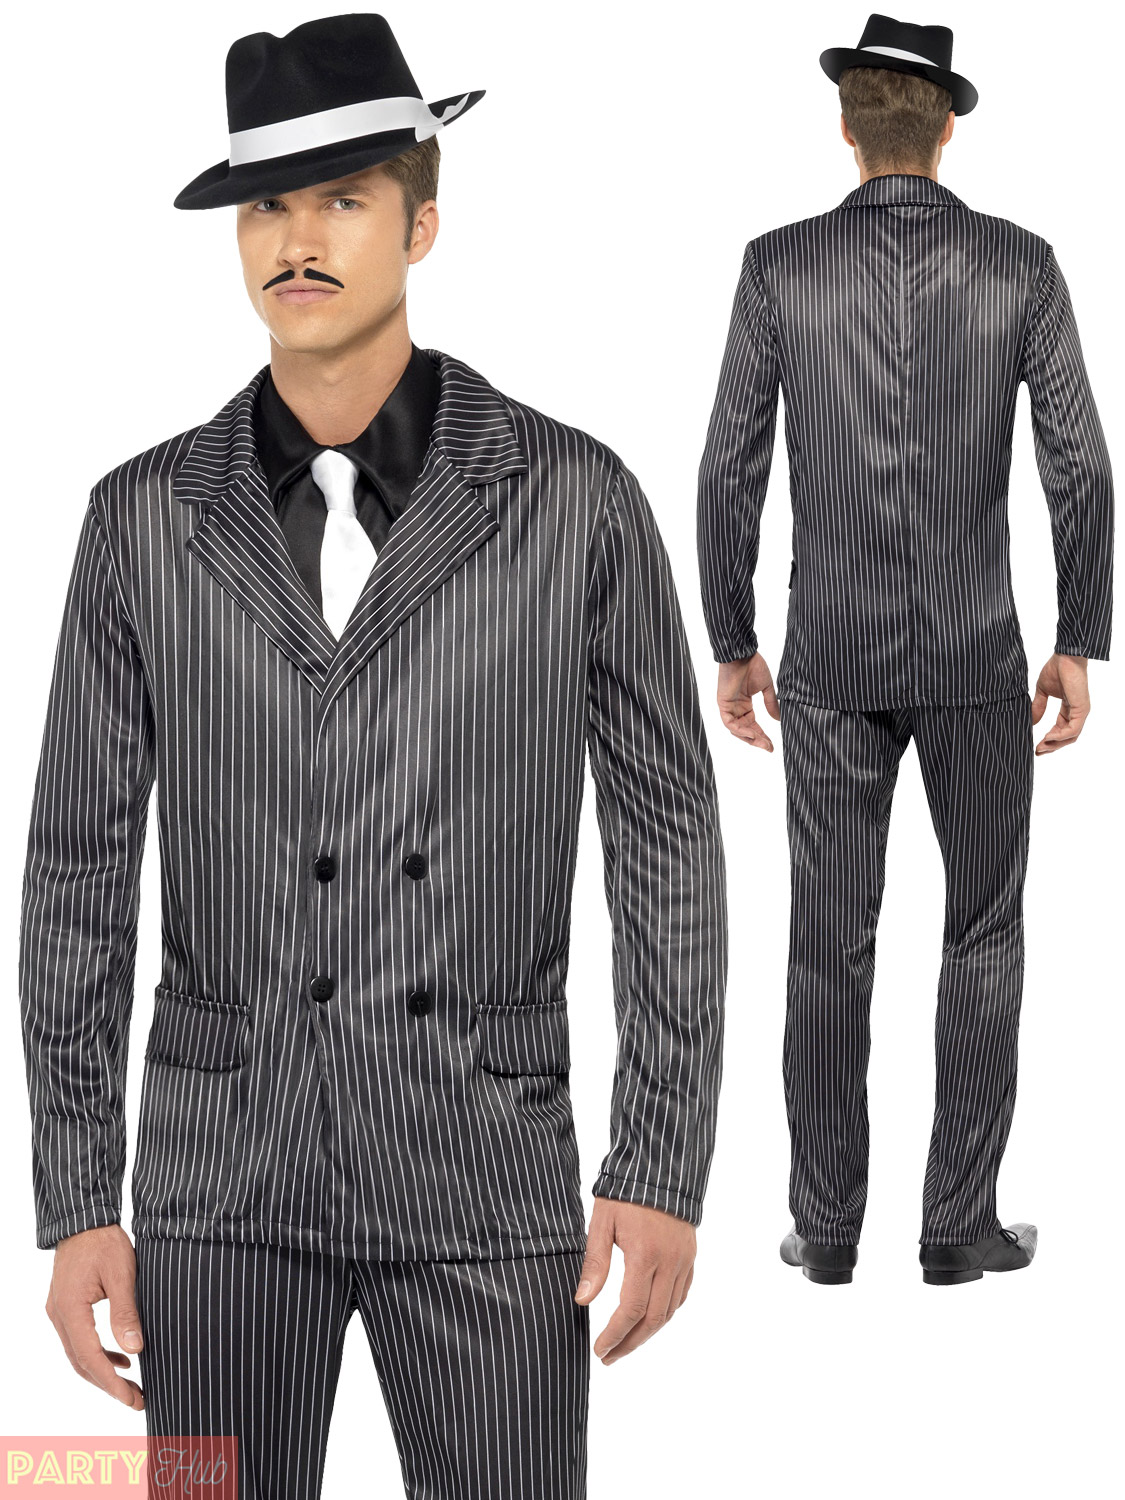 4eef7bbb067 Mens Gangster Costume Adults 1920s Pimp Daddy Fancy Dress 20s ...